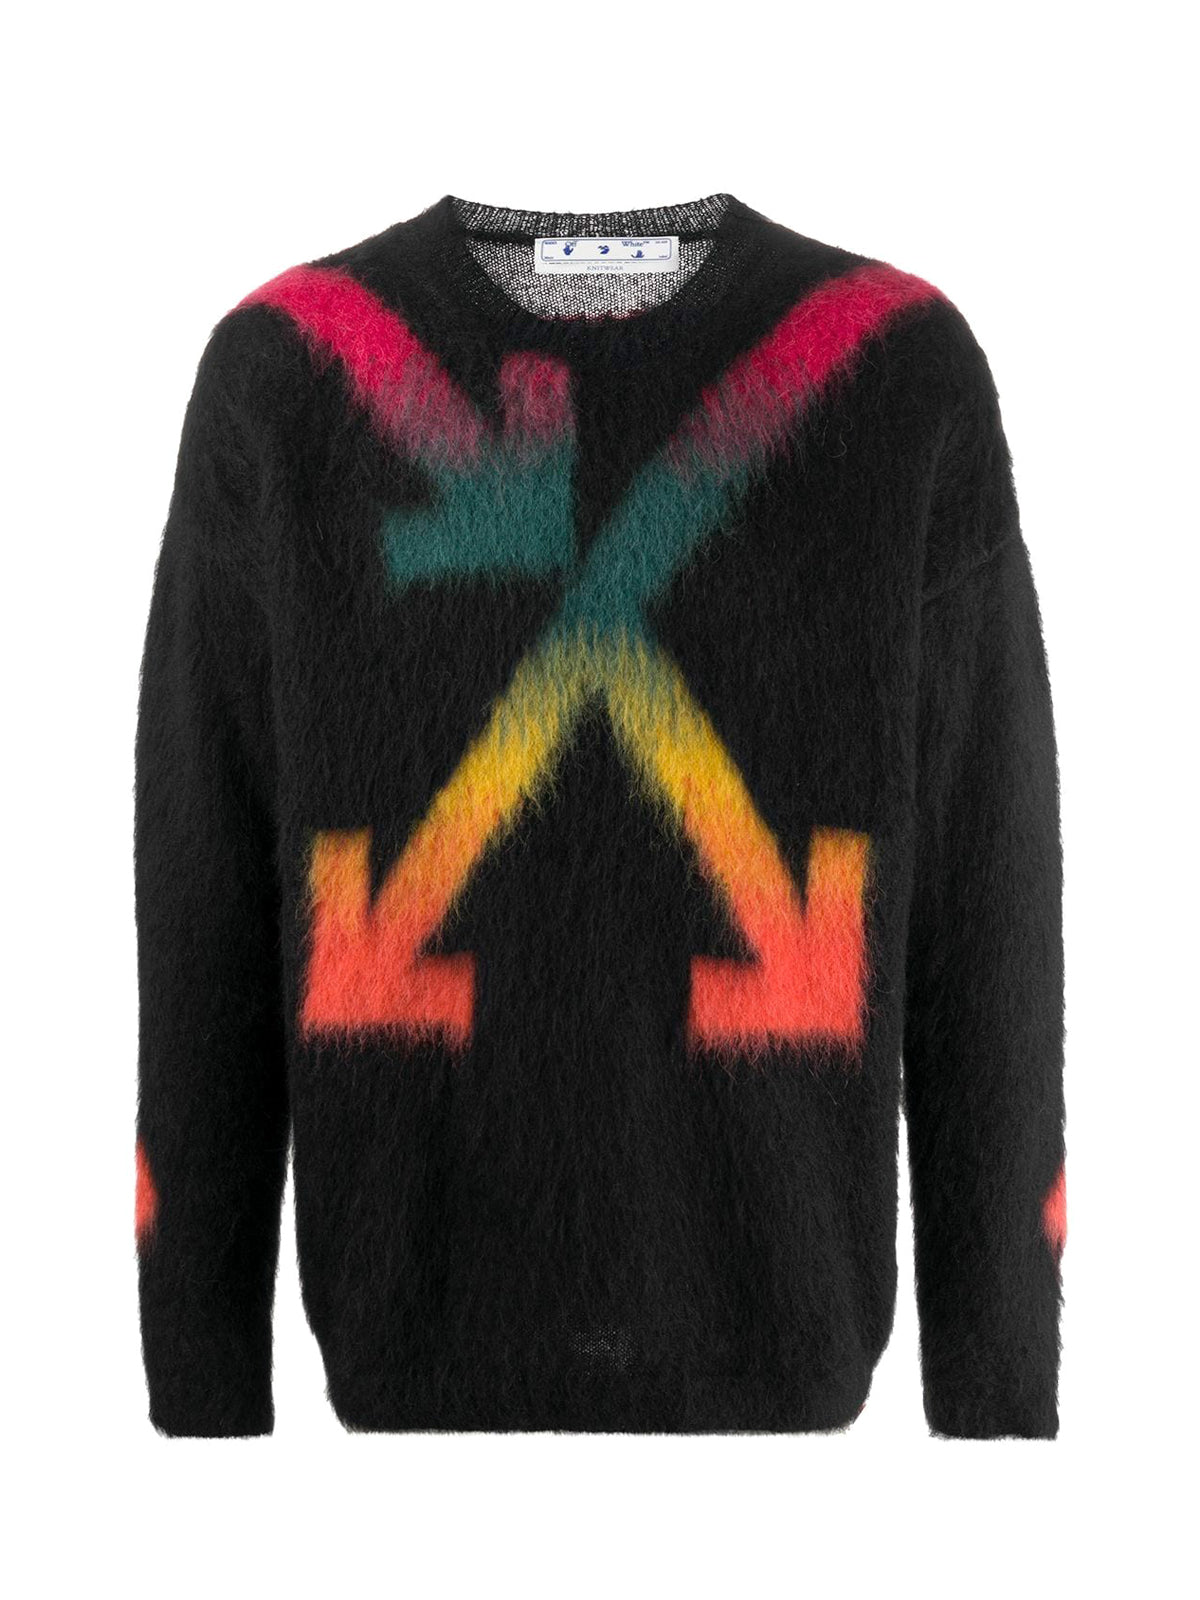 ARROWS FUZZY KNITWEAR